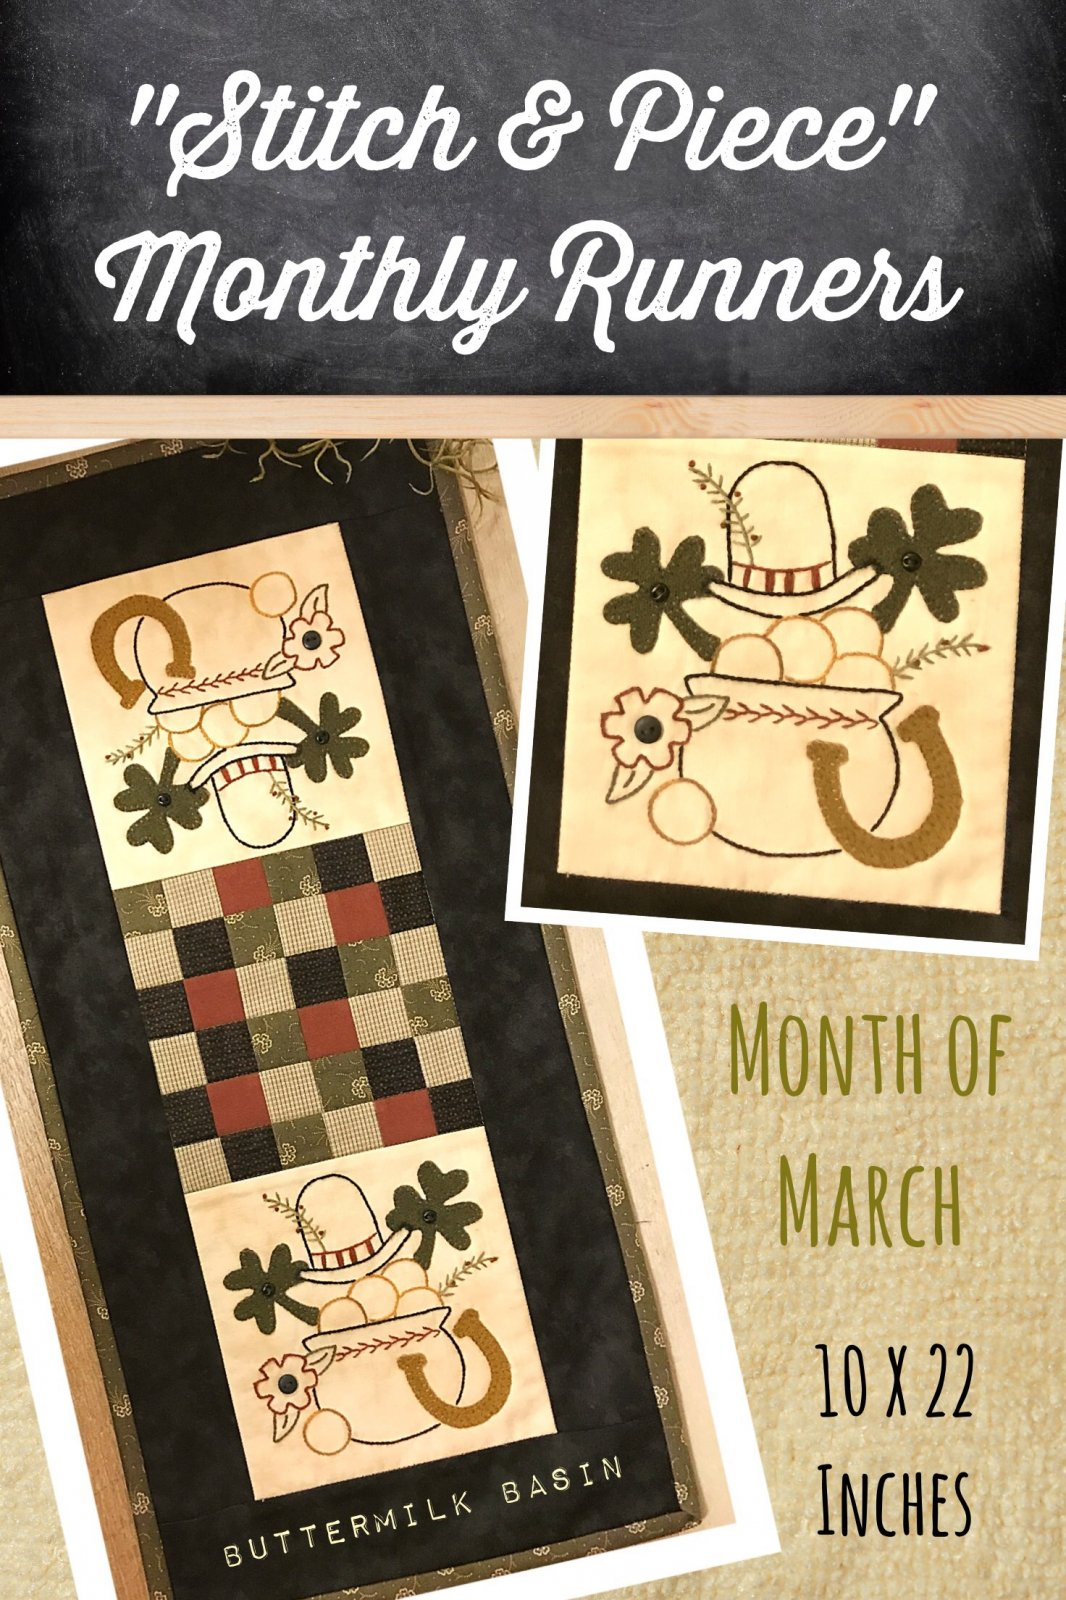 March Stitch & Piece Monthly Runner Pattern